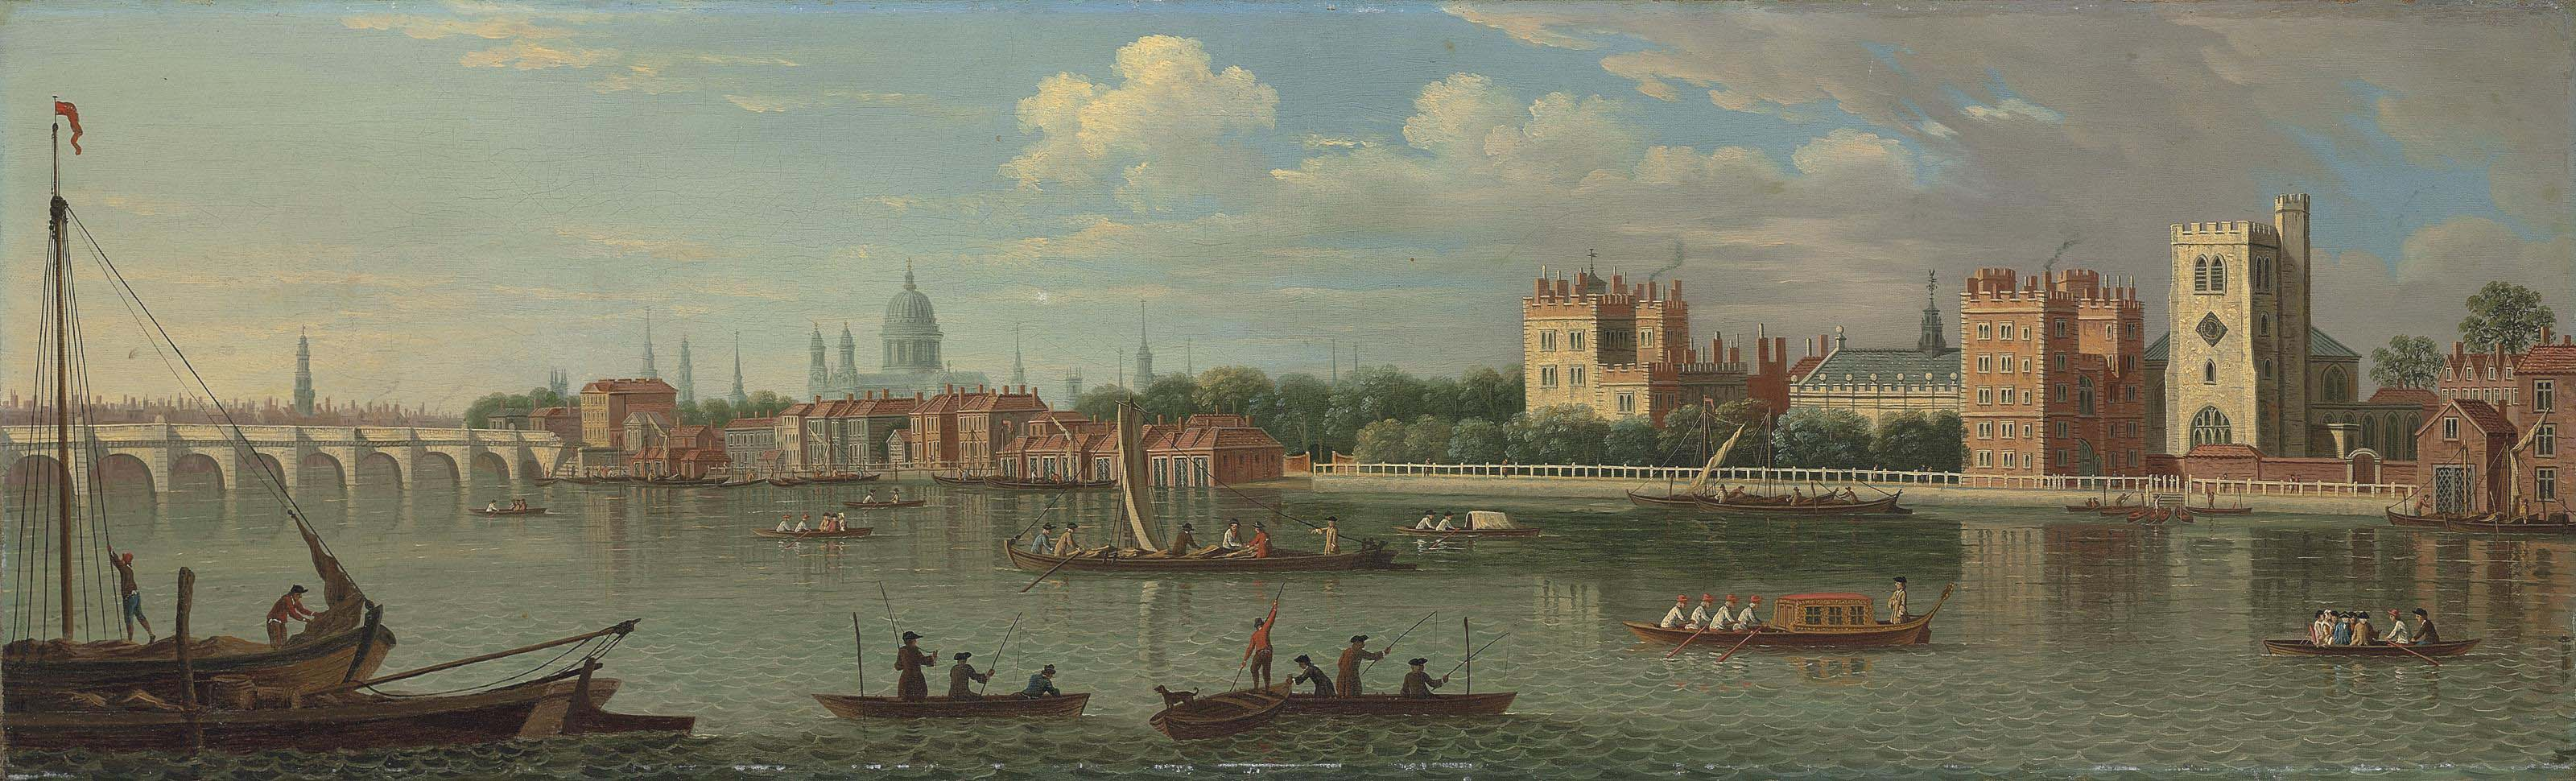 View across the River Thames to Lambeth, with Westminster Bridge and St. Paul's Cathedral beyond